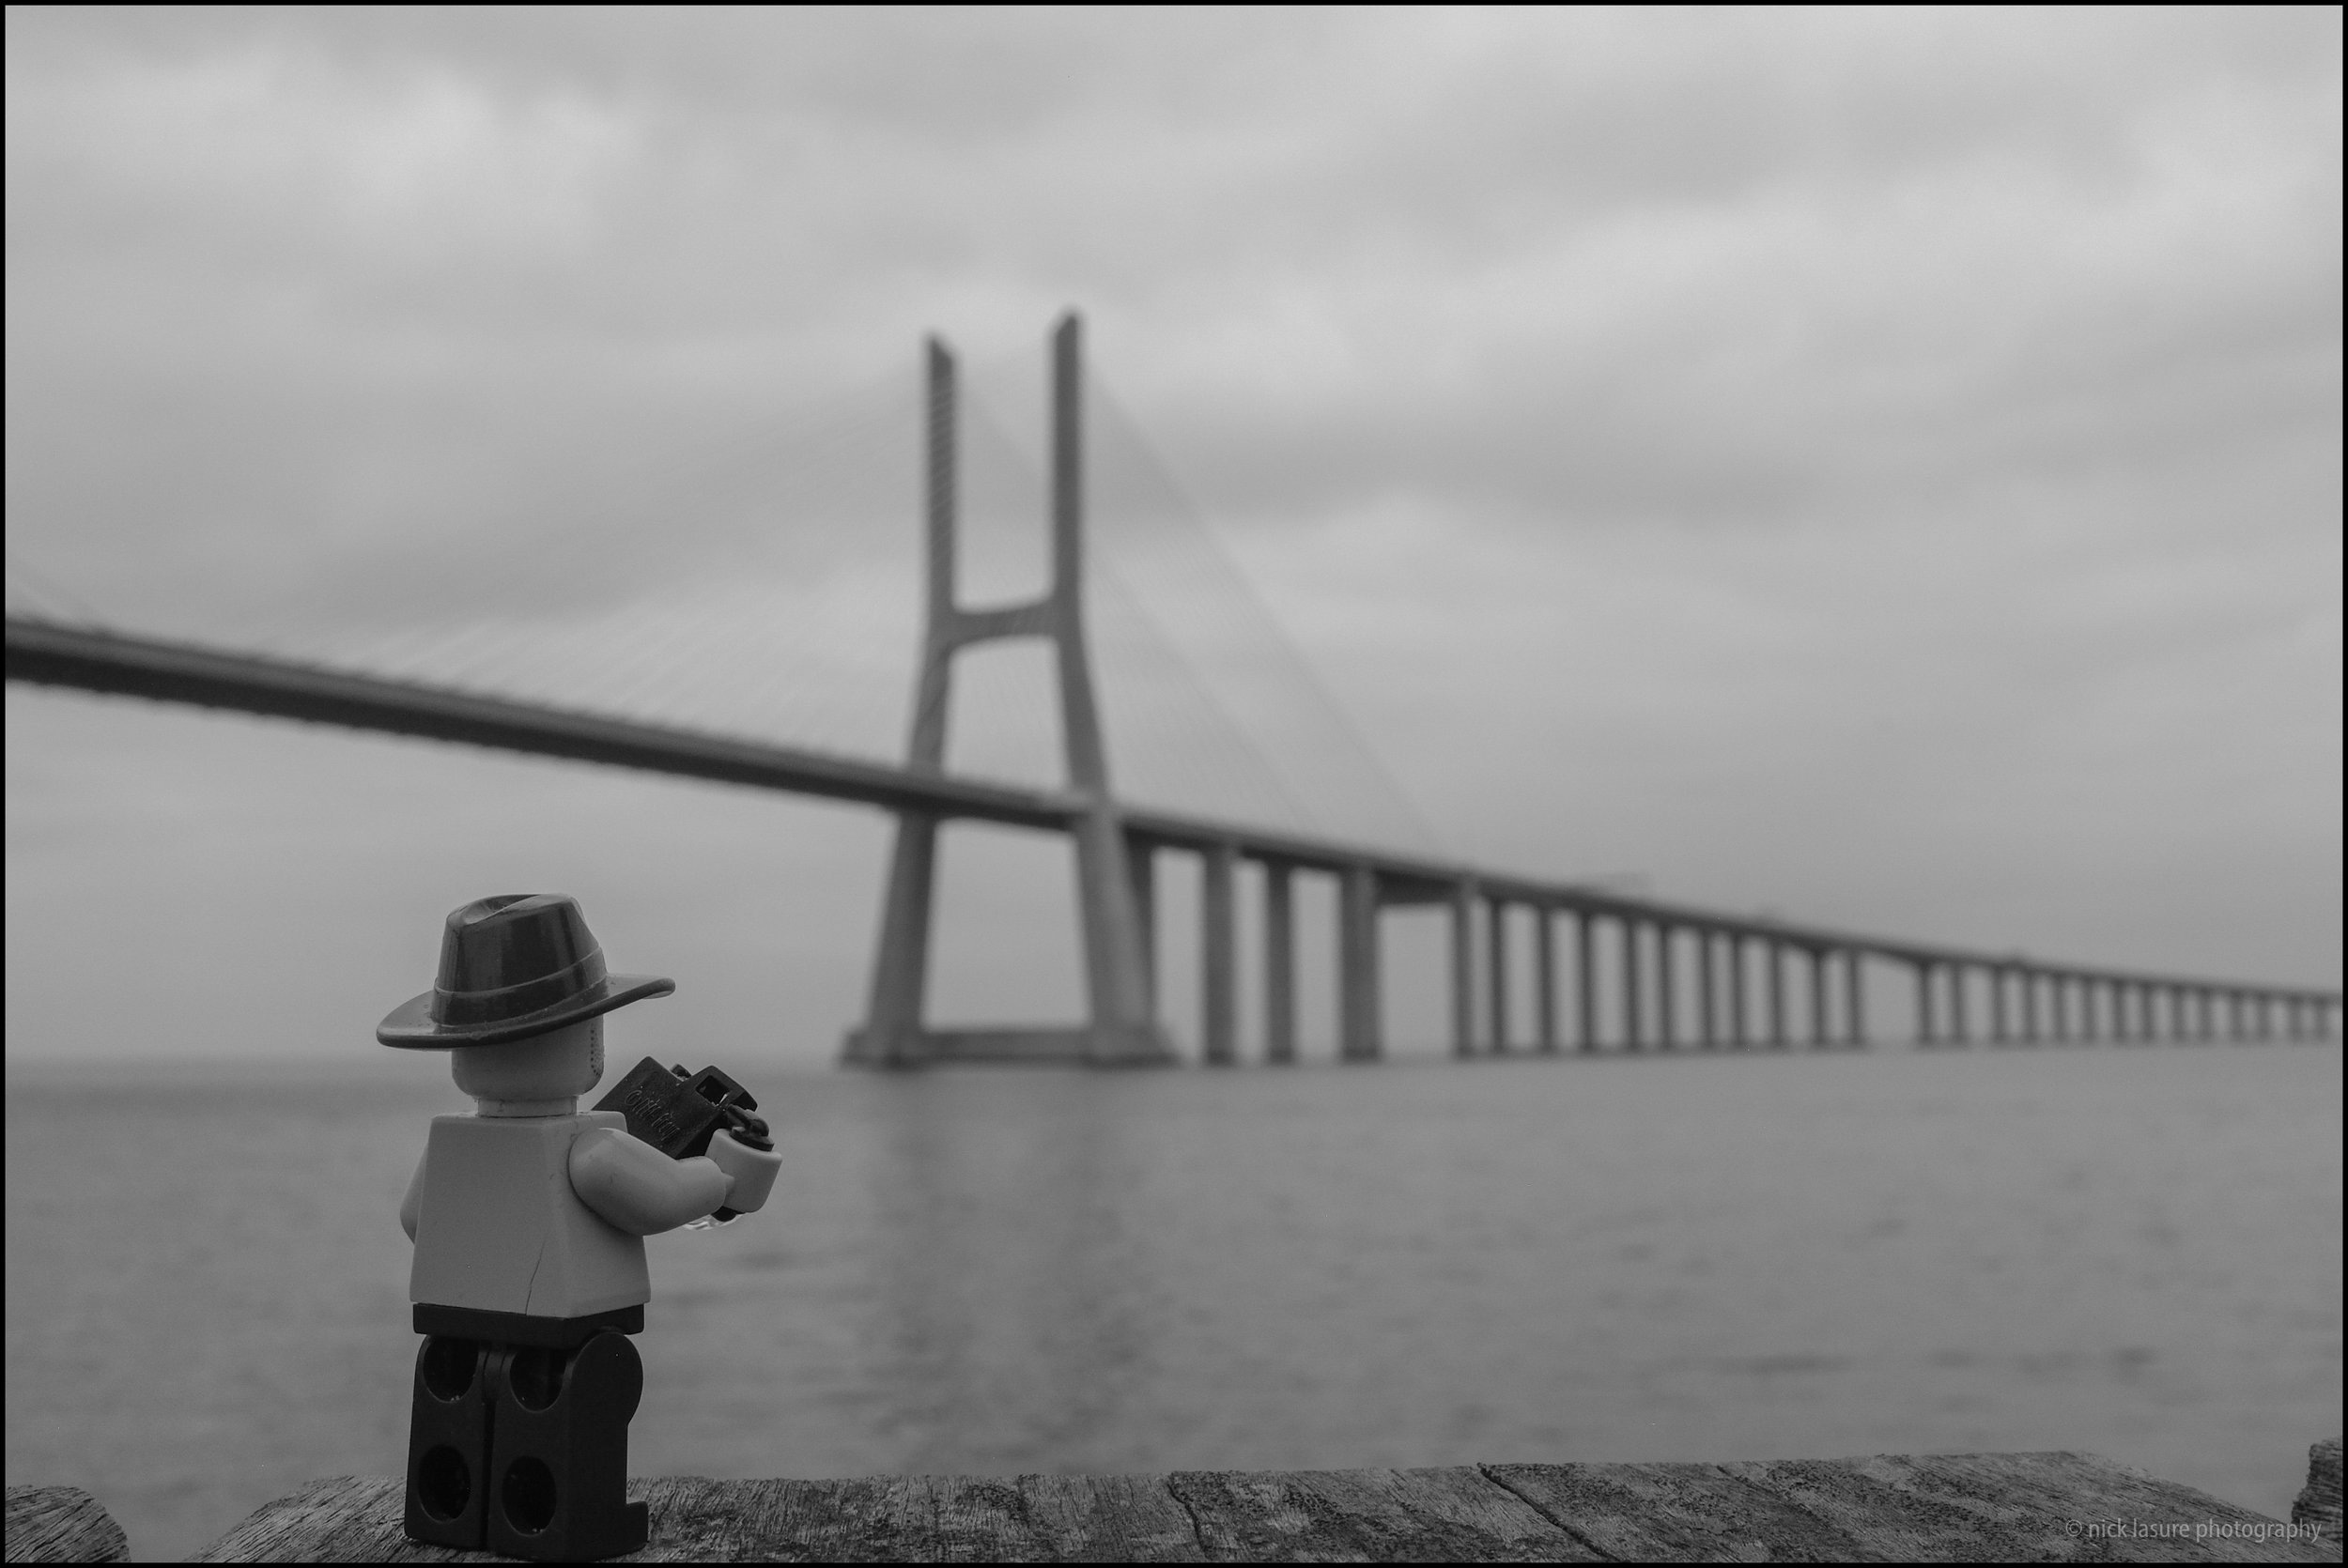 Of course Photo Lego Dude needed his shot of the bridge - X100T